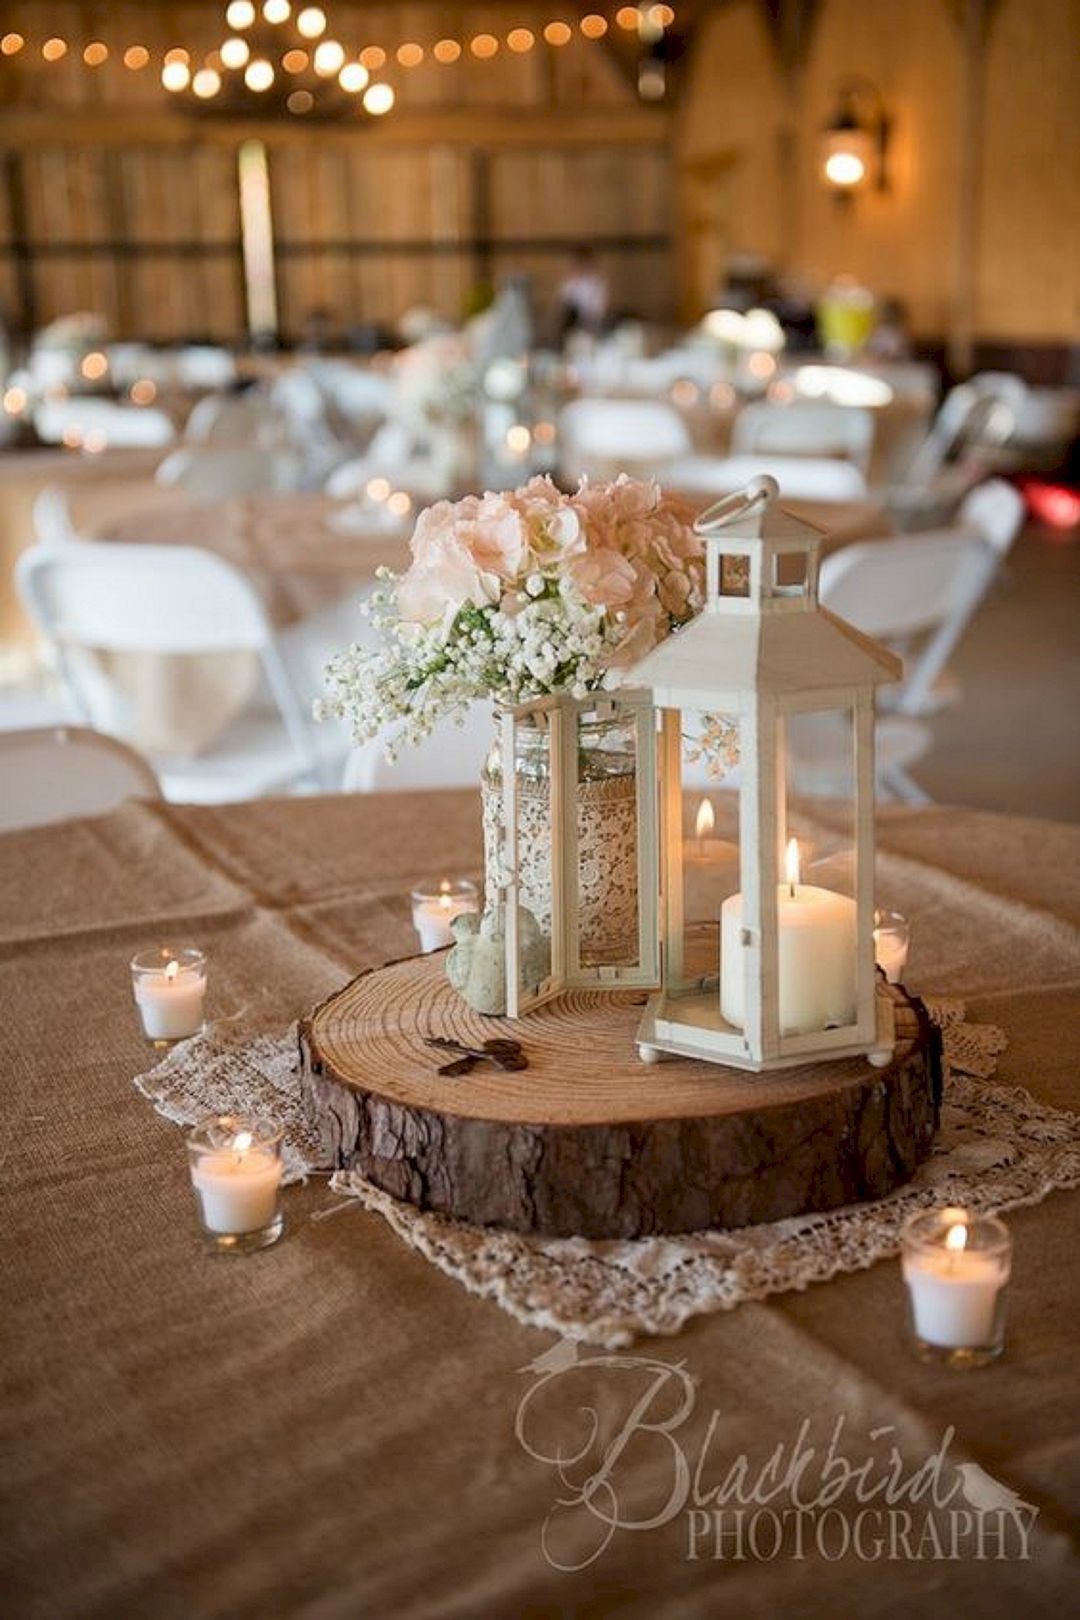 Wooden wedding decor ideas  Planning and Designing Wedding Decorations For an Outdoor Wedding